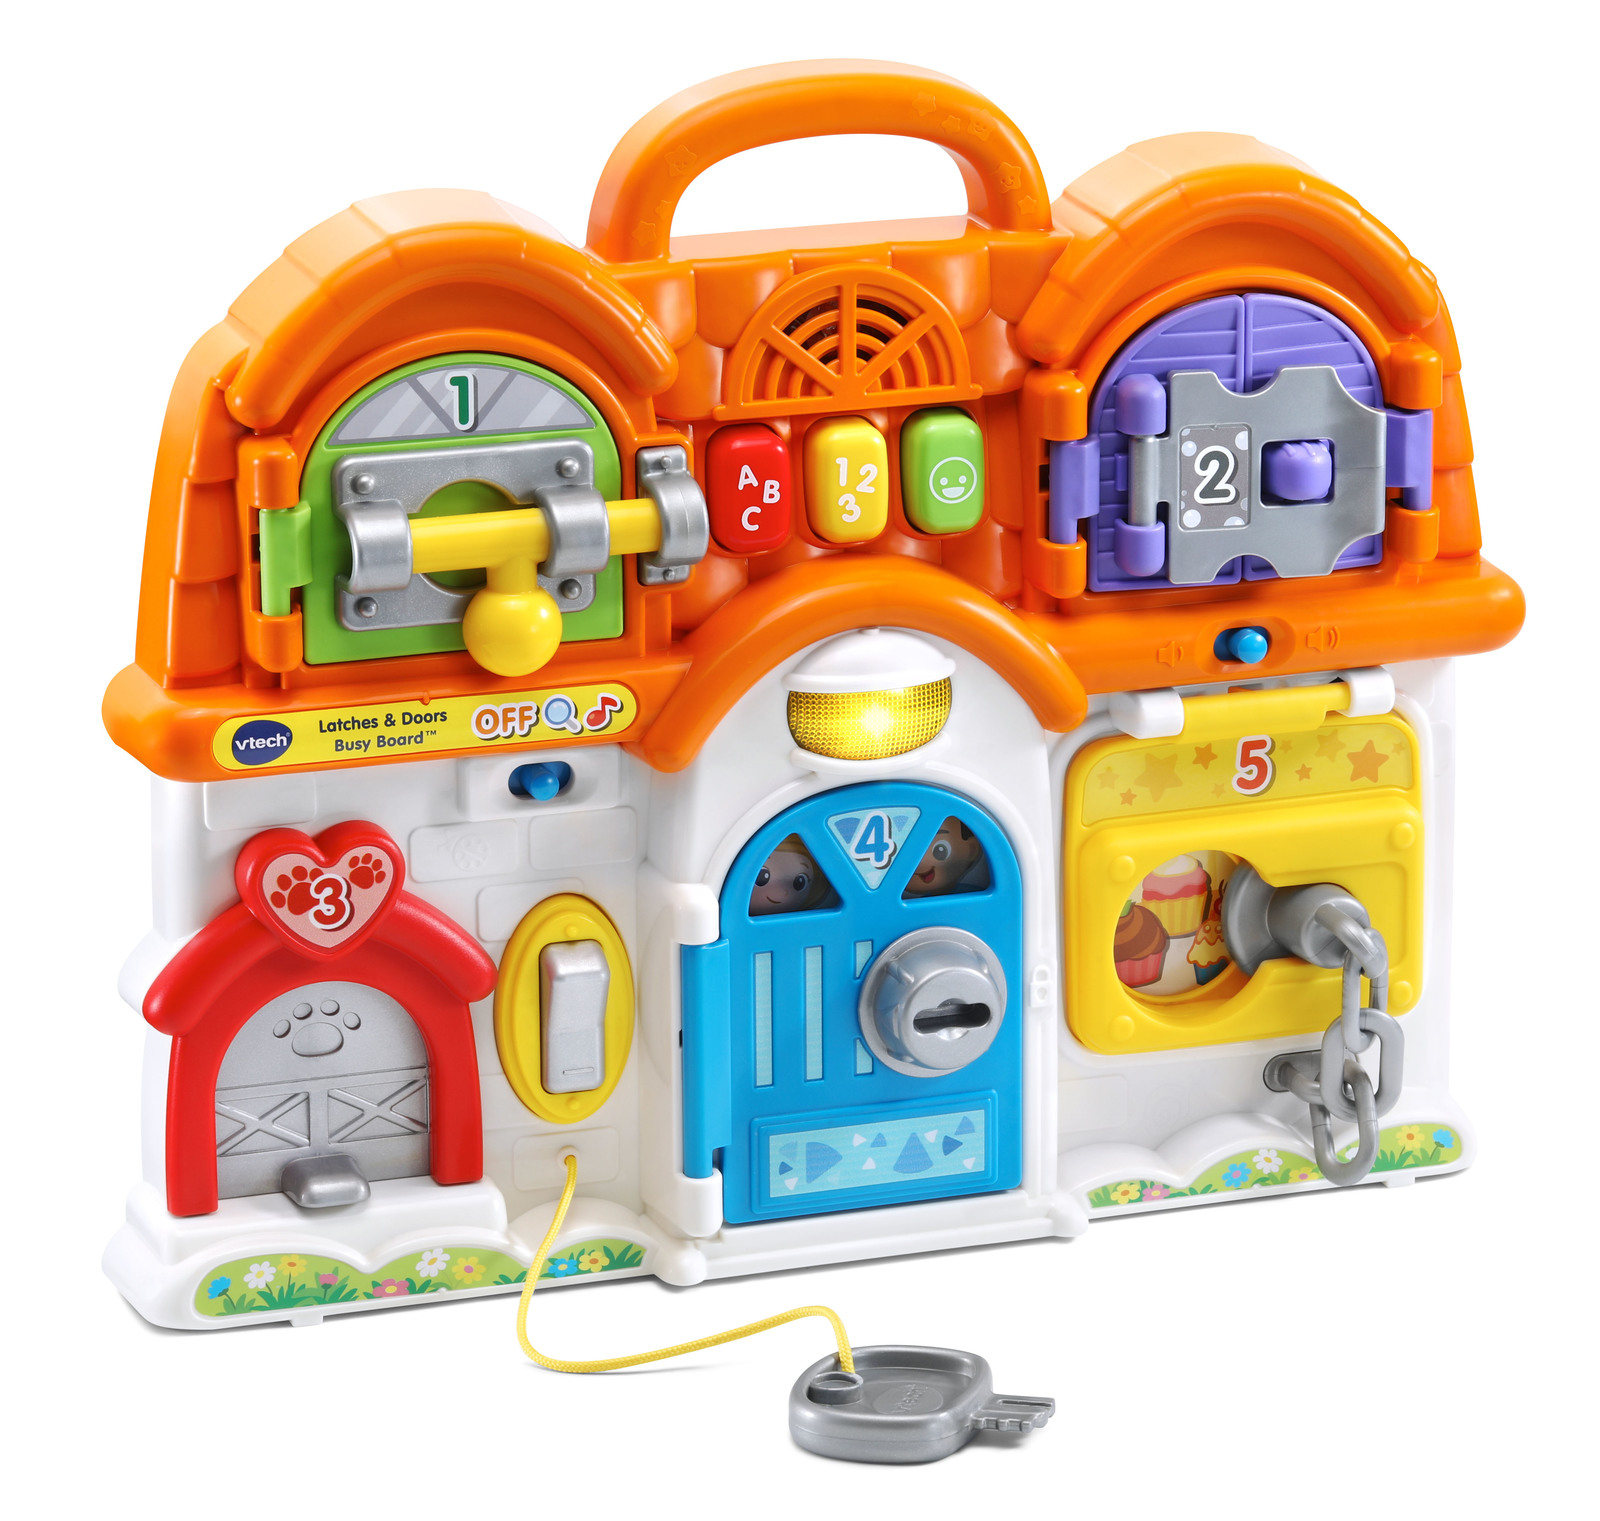 Vtech: Latches & Doors - Busy Board image